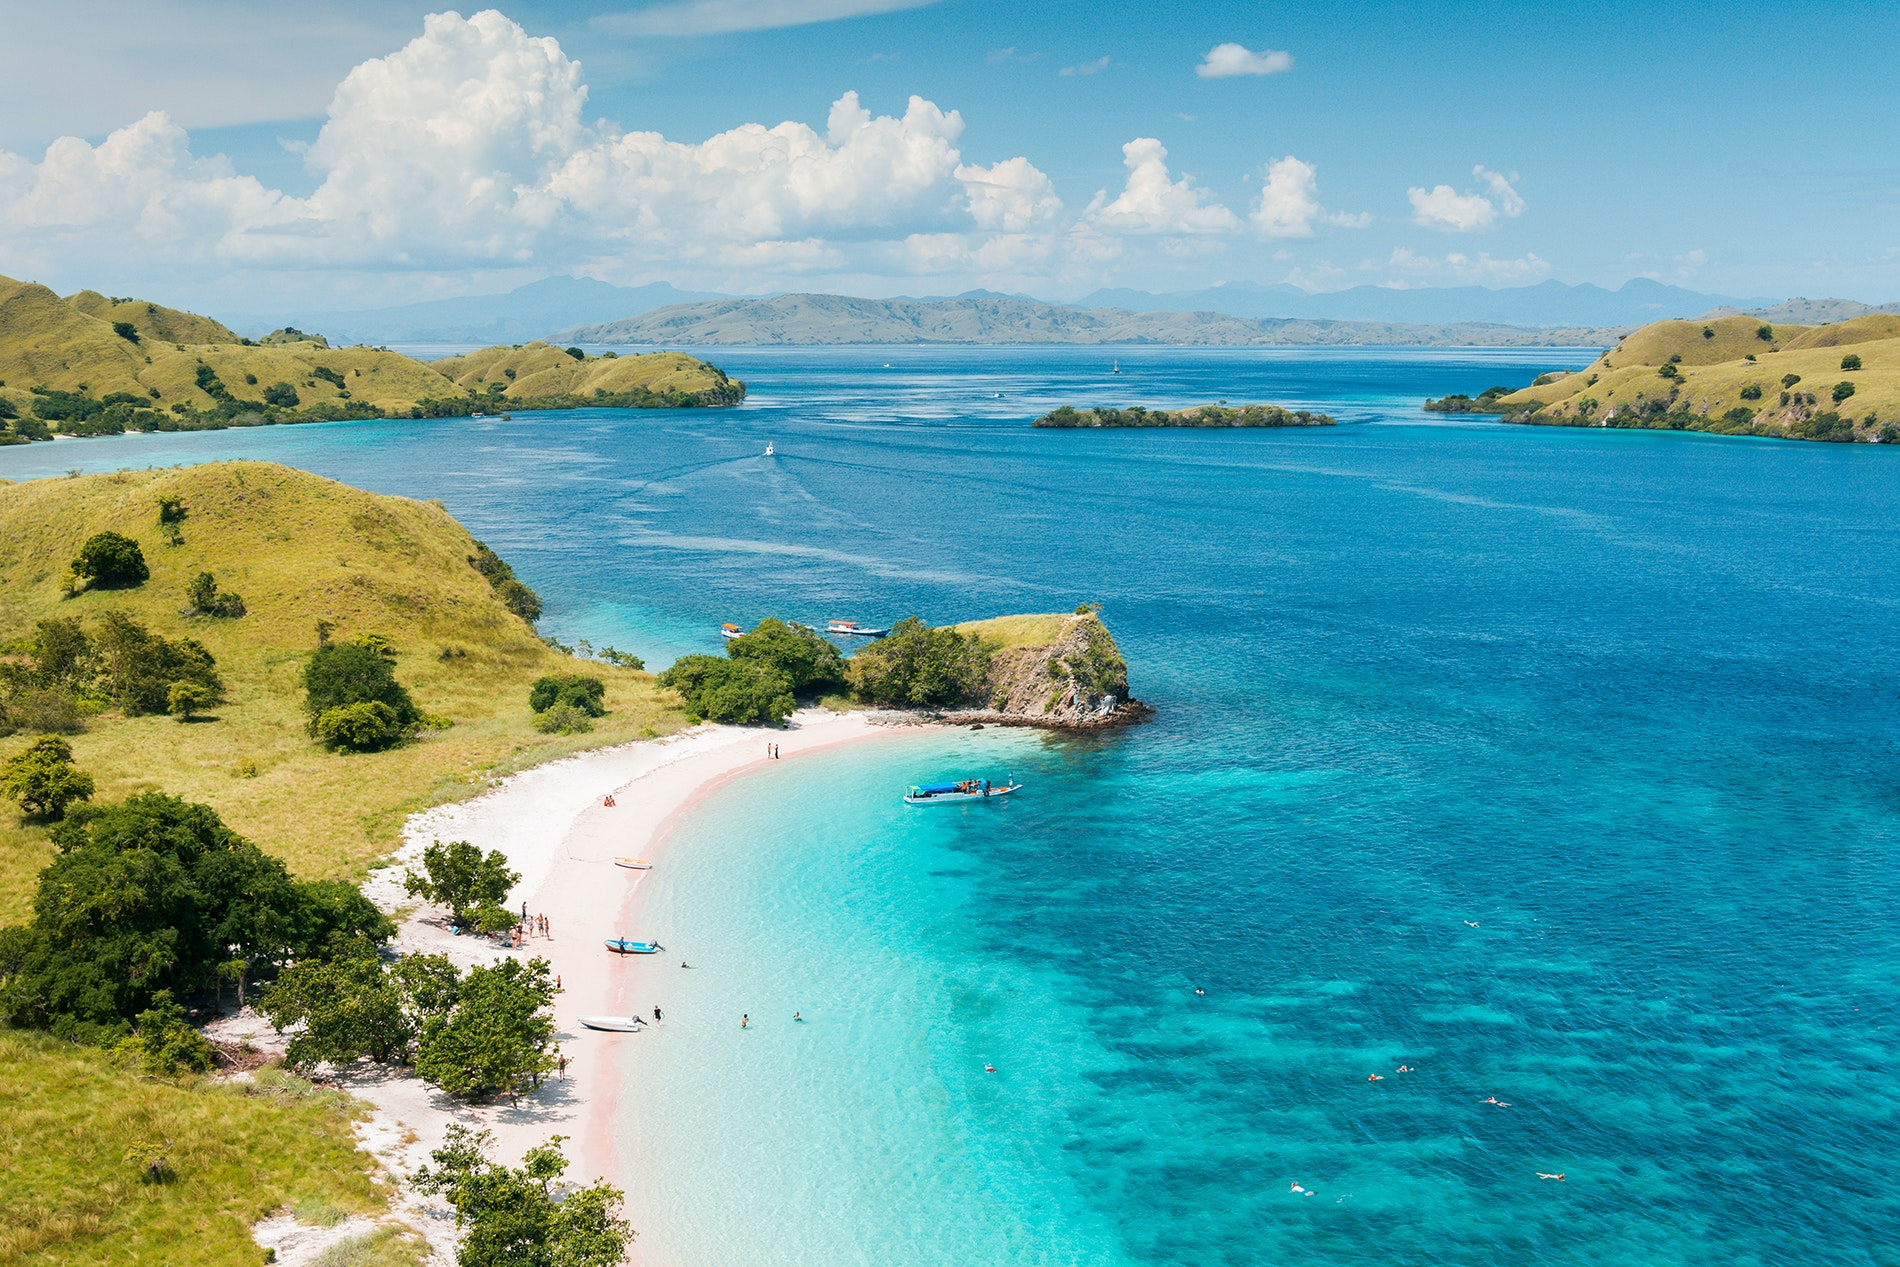 The most famous residents of Pink Beach, on Komodo Island, are its prehistoric-looking komodo dragons.